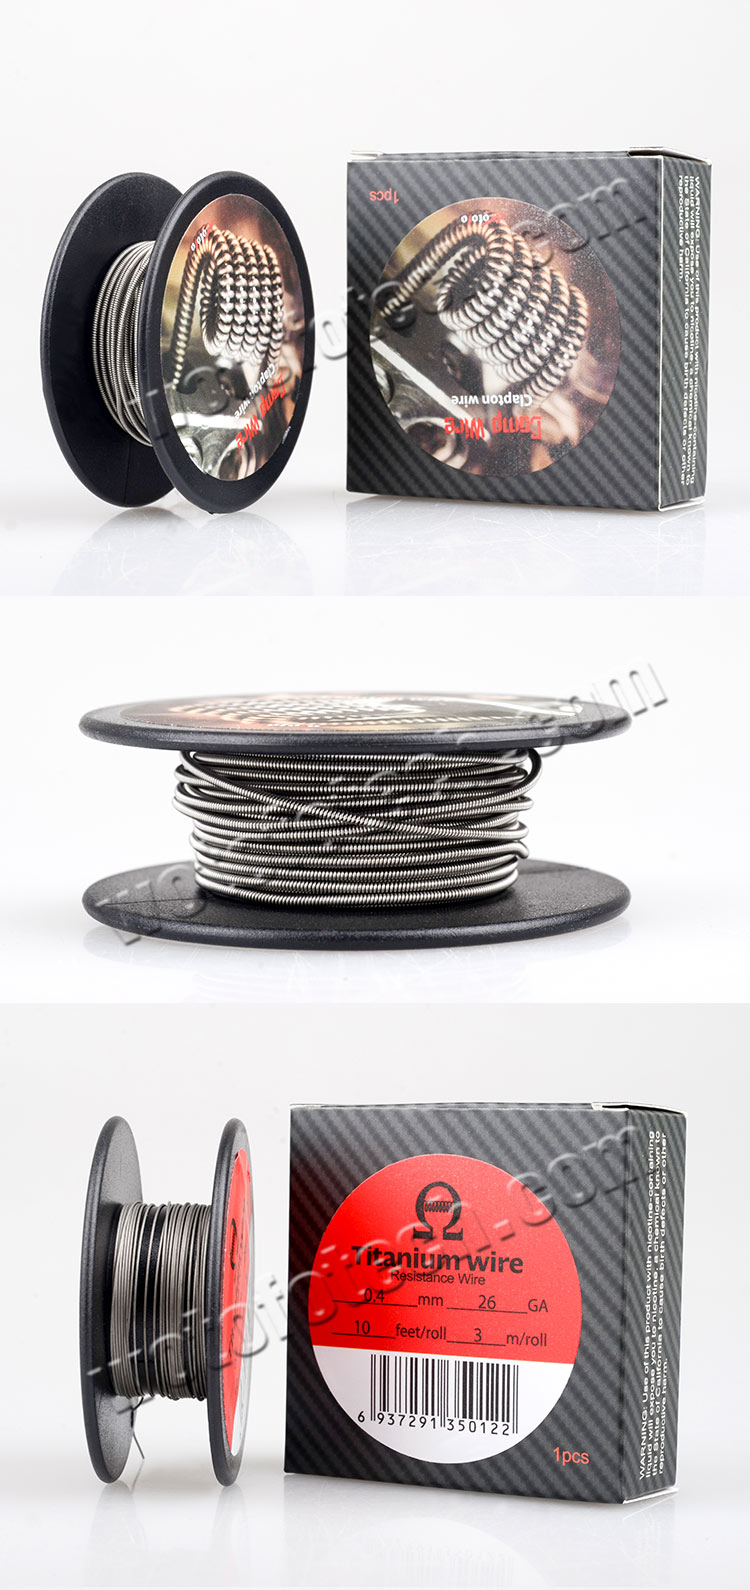 Wotofo Comp Wire || Twisted coil/spool wire, clapton wire by wotofo ...